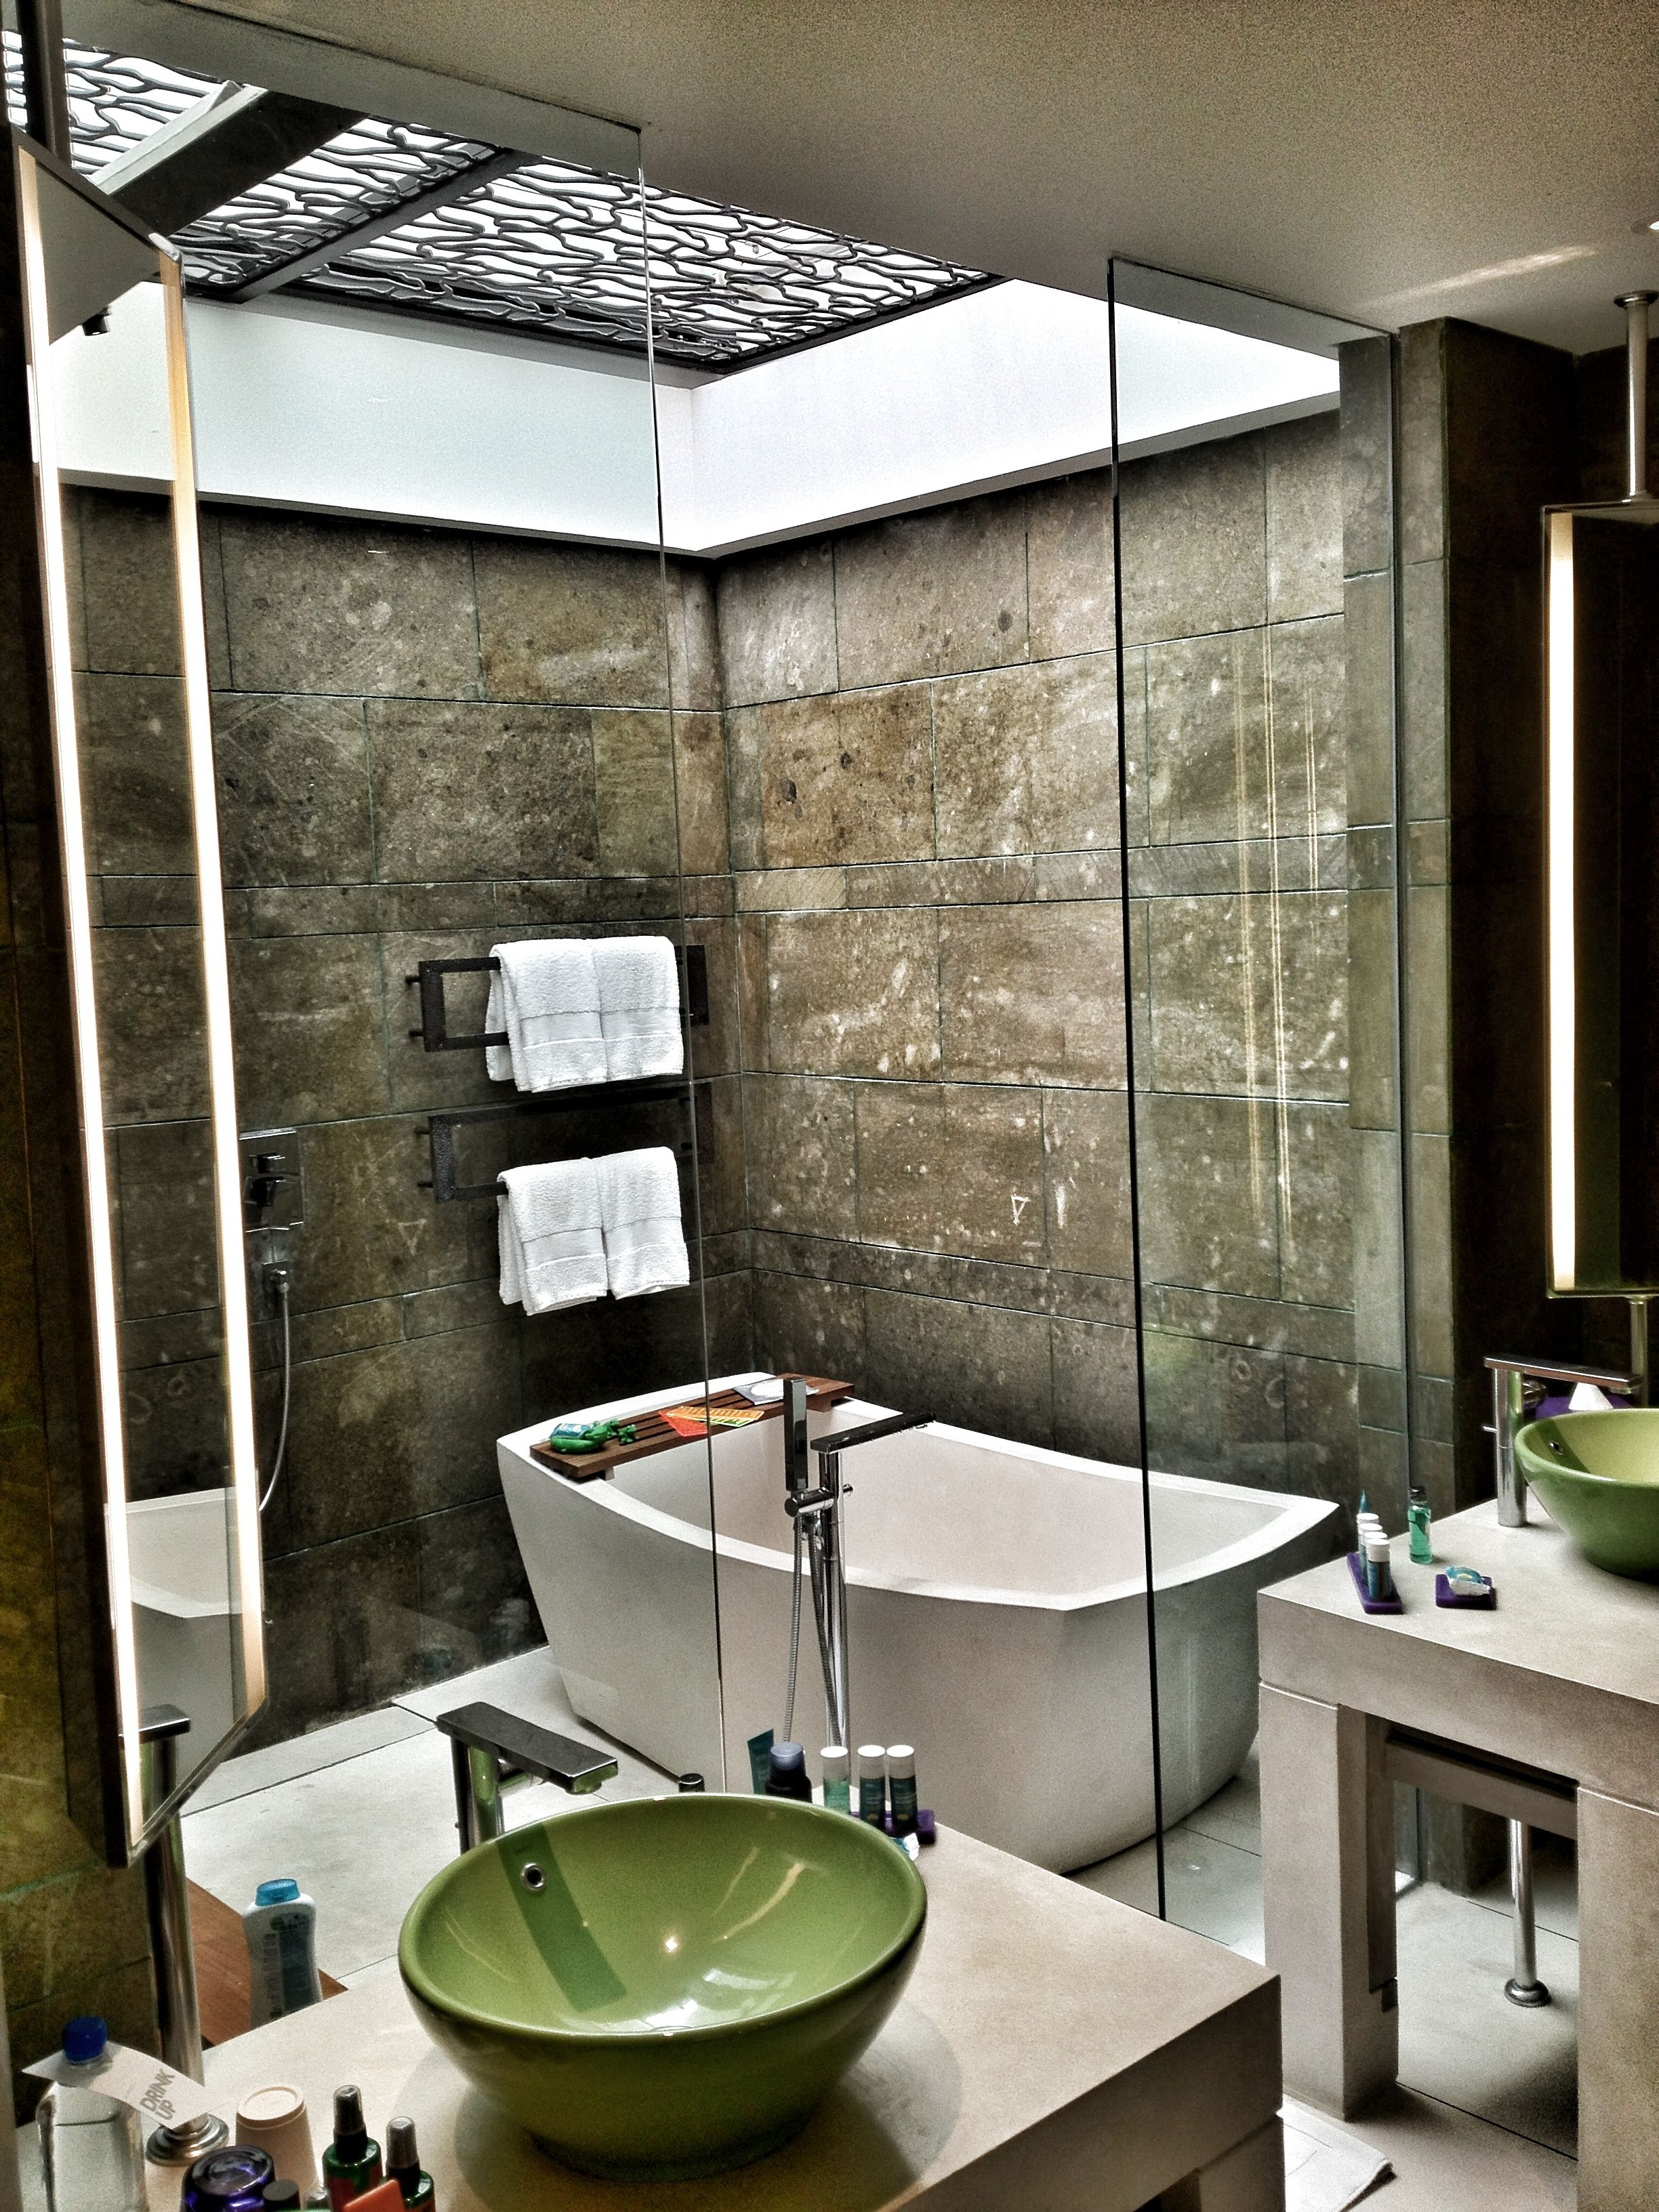 The W Hotel, Bali ... Skylighted bathroom bliss! (and fab body